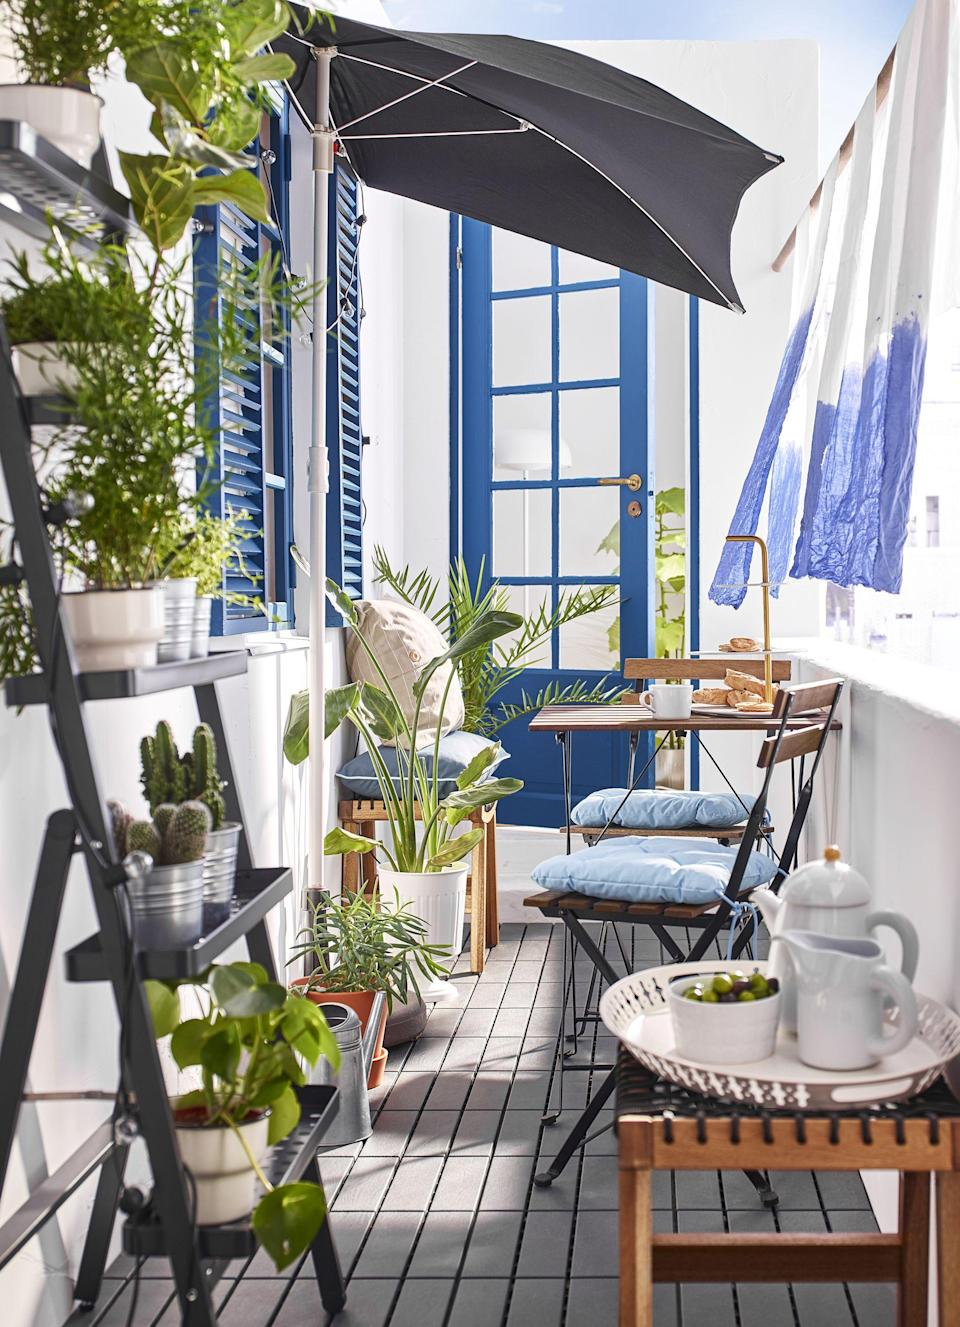 """<p><strong>Looking for <a href=""""https://www.housebeautiful.com/uk/garden/a30415704/gardeners-trend-predictions/"""" rel=""""nofollow noopener"""" target=""""_blank"""" data-ylk=""""slk:garden"""" class=""""link rapid-noclick-resp"""">garden</a> and outdoor living ideas for 2021? New research has uncovered the top trends set to dominate next year — and balconies, wildlife-friendly plants and garden furniture have all topped the list. </strong></p><p>The team at <a href=""""https://www.lovethegarden.com/"""" rel=""""nofollow noopener"""" target=""""_blank"""" data-ylk=""""slk:Love The Garden"""" class=""""link rapid-noclick-resp"""">Love The Garden</a> analysed over 100 different gardening hashtags on Instagram to find out which themes we would be tapping into. 'We were able to find those trends growing in popularity and set to become even more dominant in 2021. So, as you start looking ahead to the next growing season, here are the trends to start thinking about,' explain the team. </p><p>Take a look at the top 10 emerging trends below...</p>"""